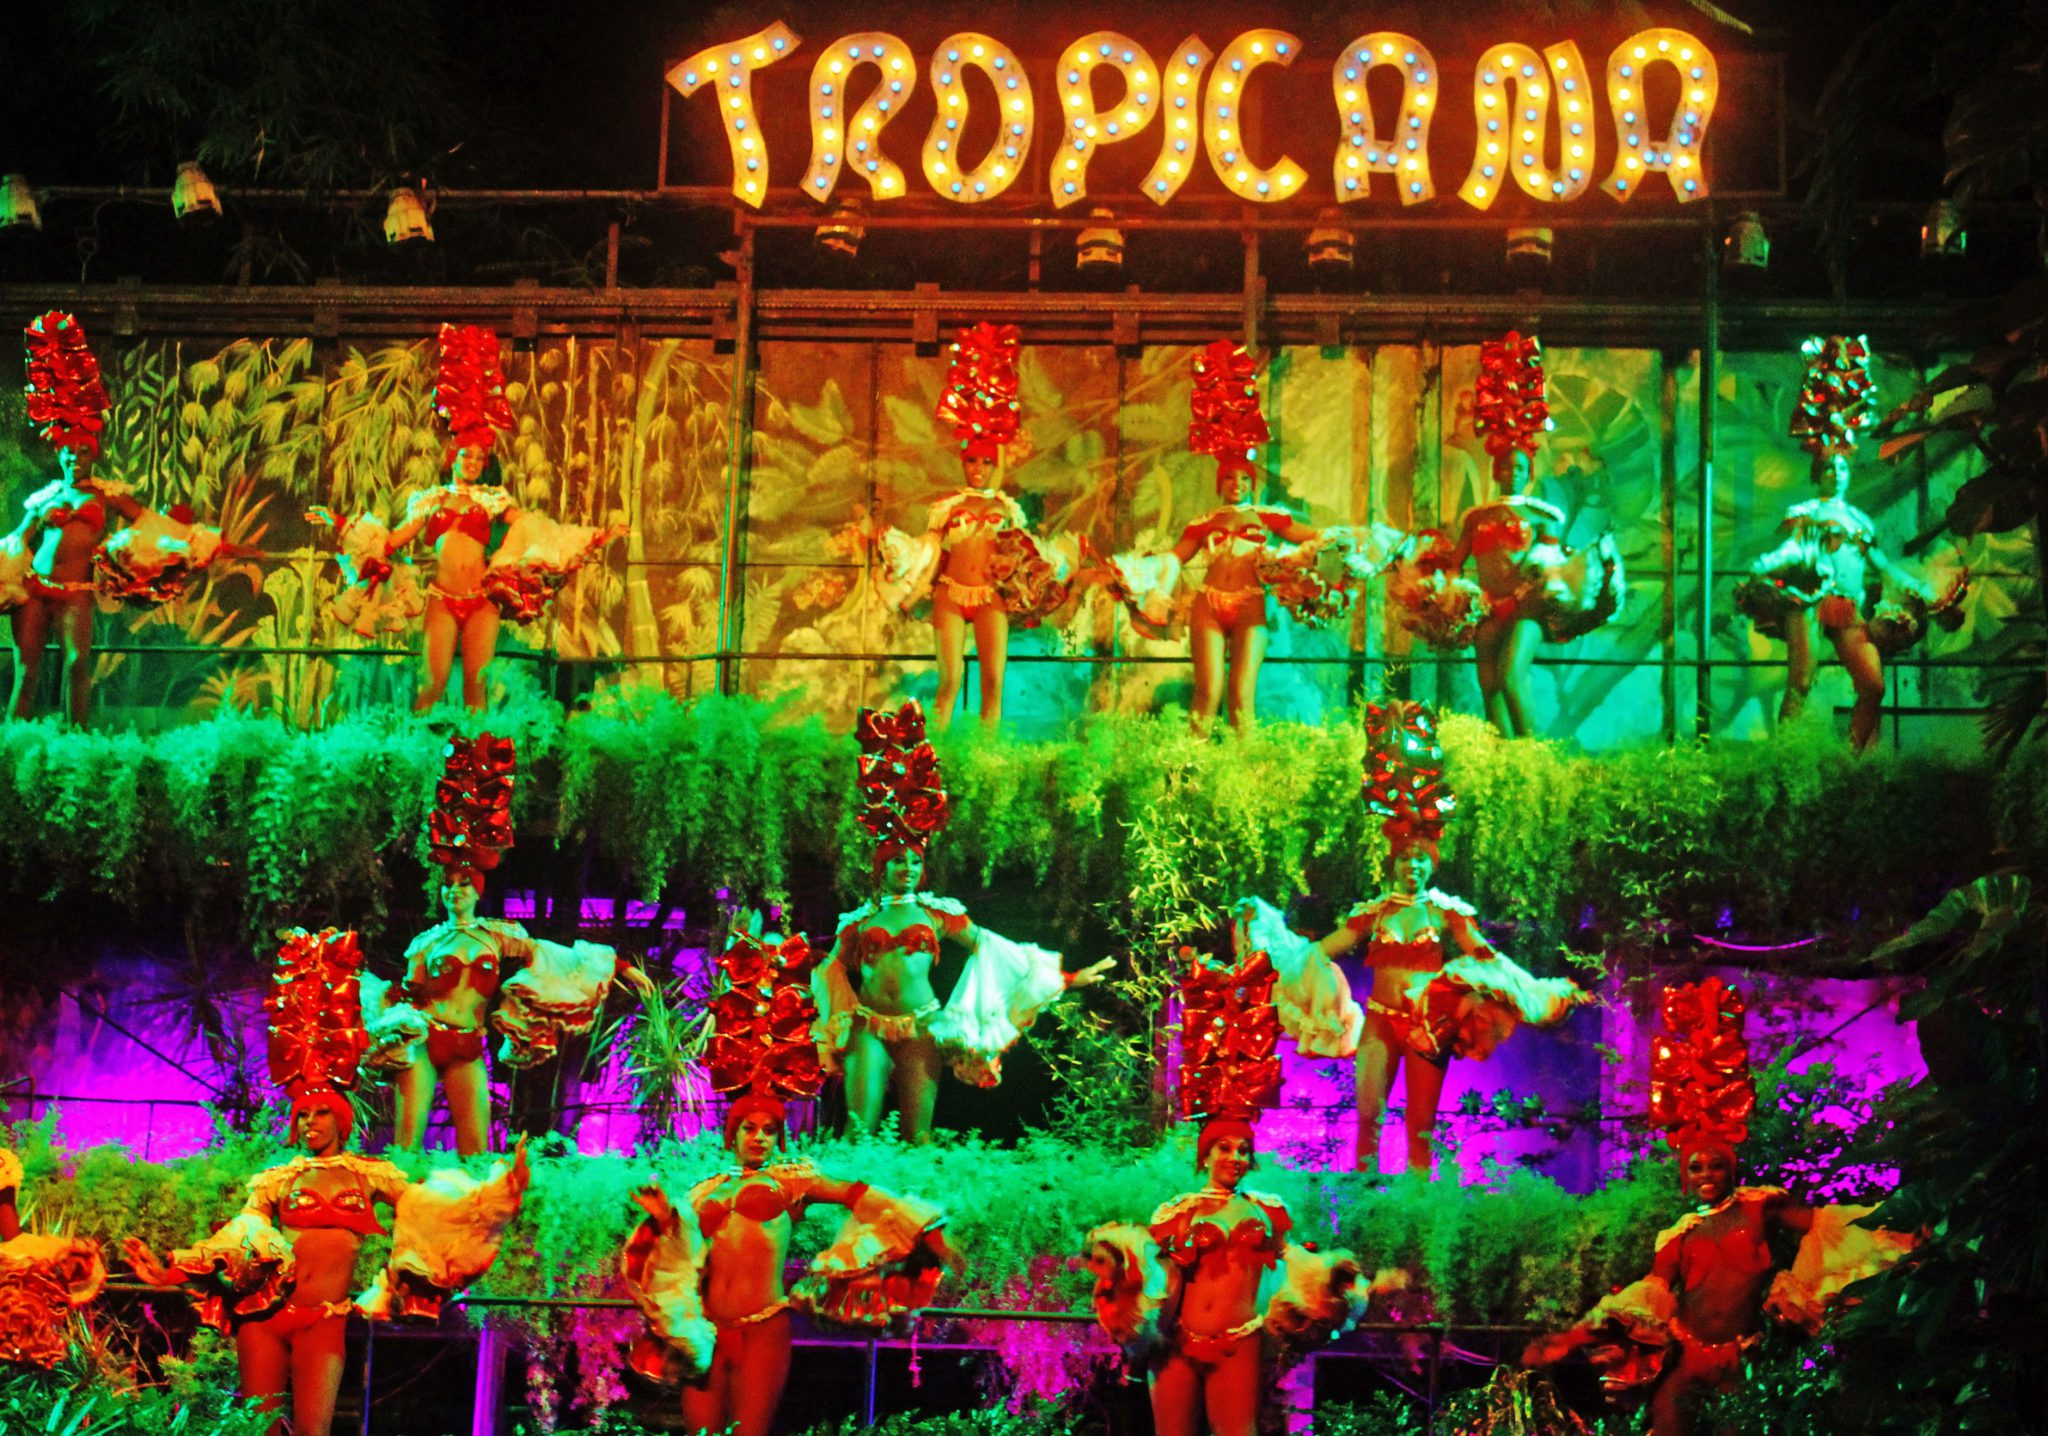 The Tropicana is a lush three tiered tropical garden setting that showcases over 100 dancers and performers on three sides of a grand ballroom sized center stage.